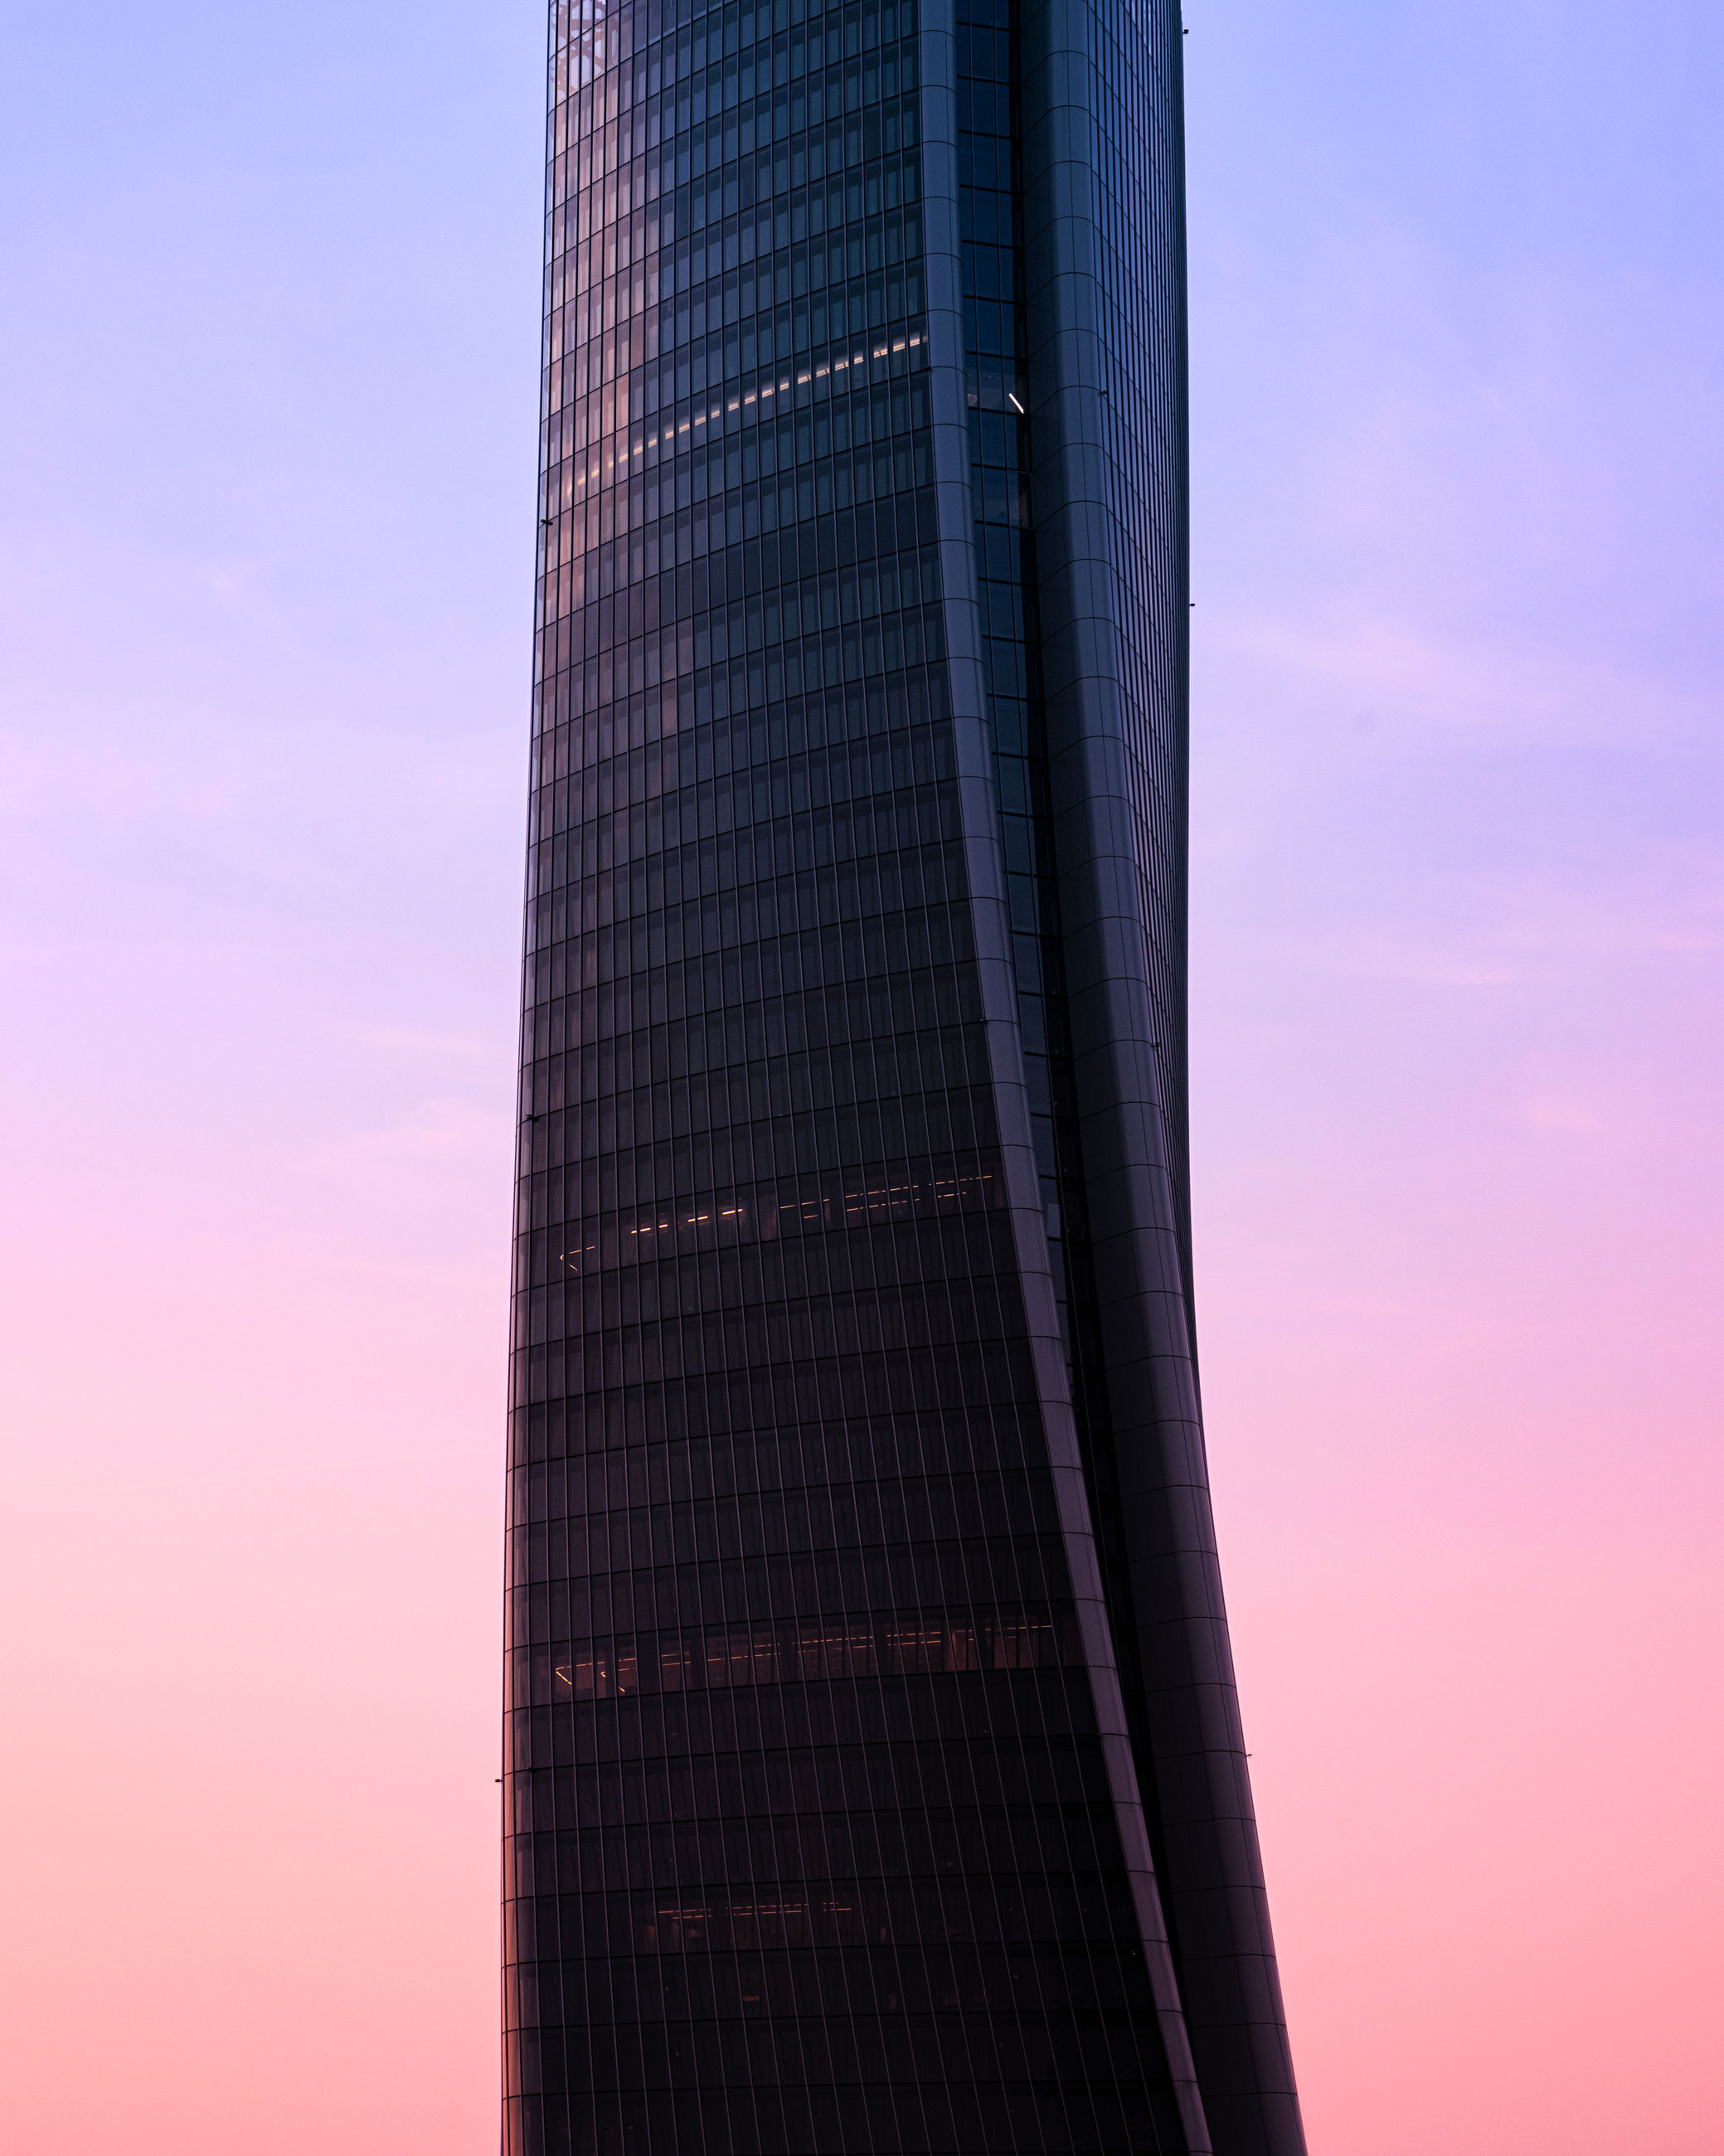 sky, sunset, built structure, modern, office building exterior, architecture, tall - high, low angle view, building exterior, skyscraper, city, nature, tower, office, no people, pink color, building, reflection, outdoors, travel destinations, purple